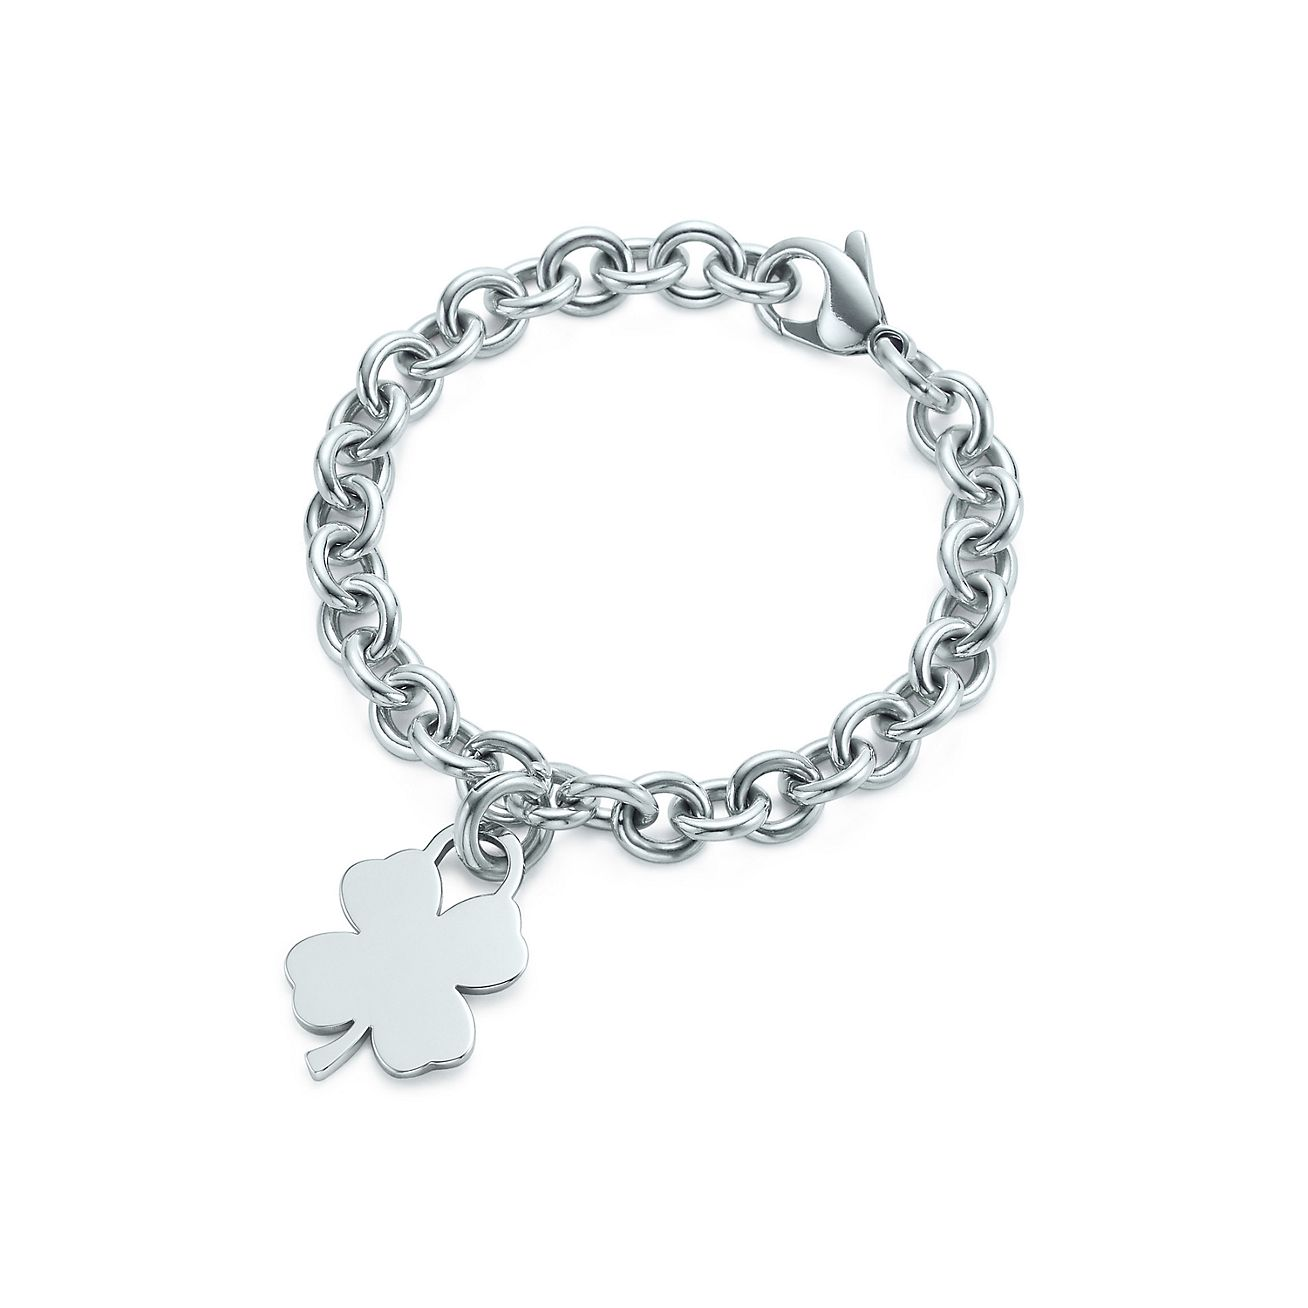 Fourleaf Clover Tag Charm And Bracelet In Sterling Silver  Tiffany & Co